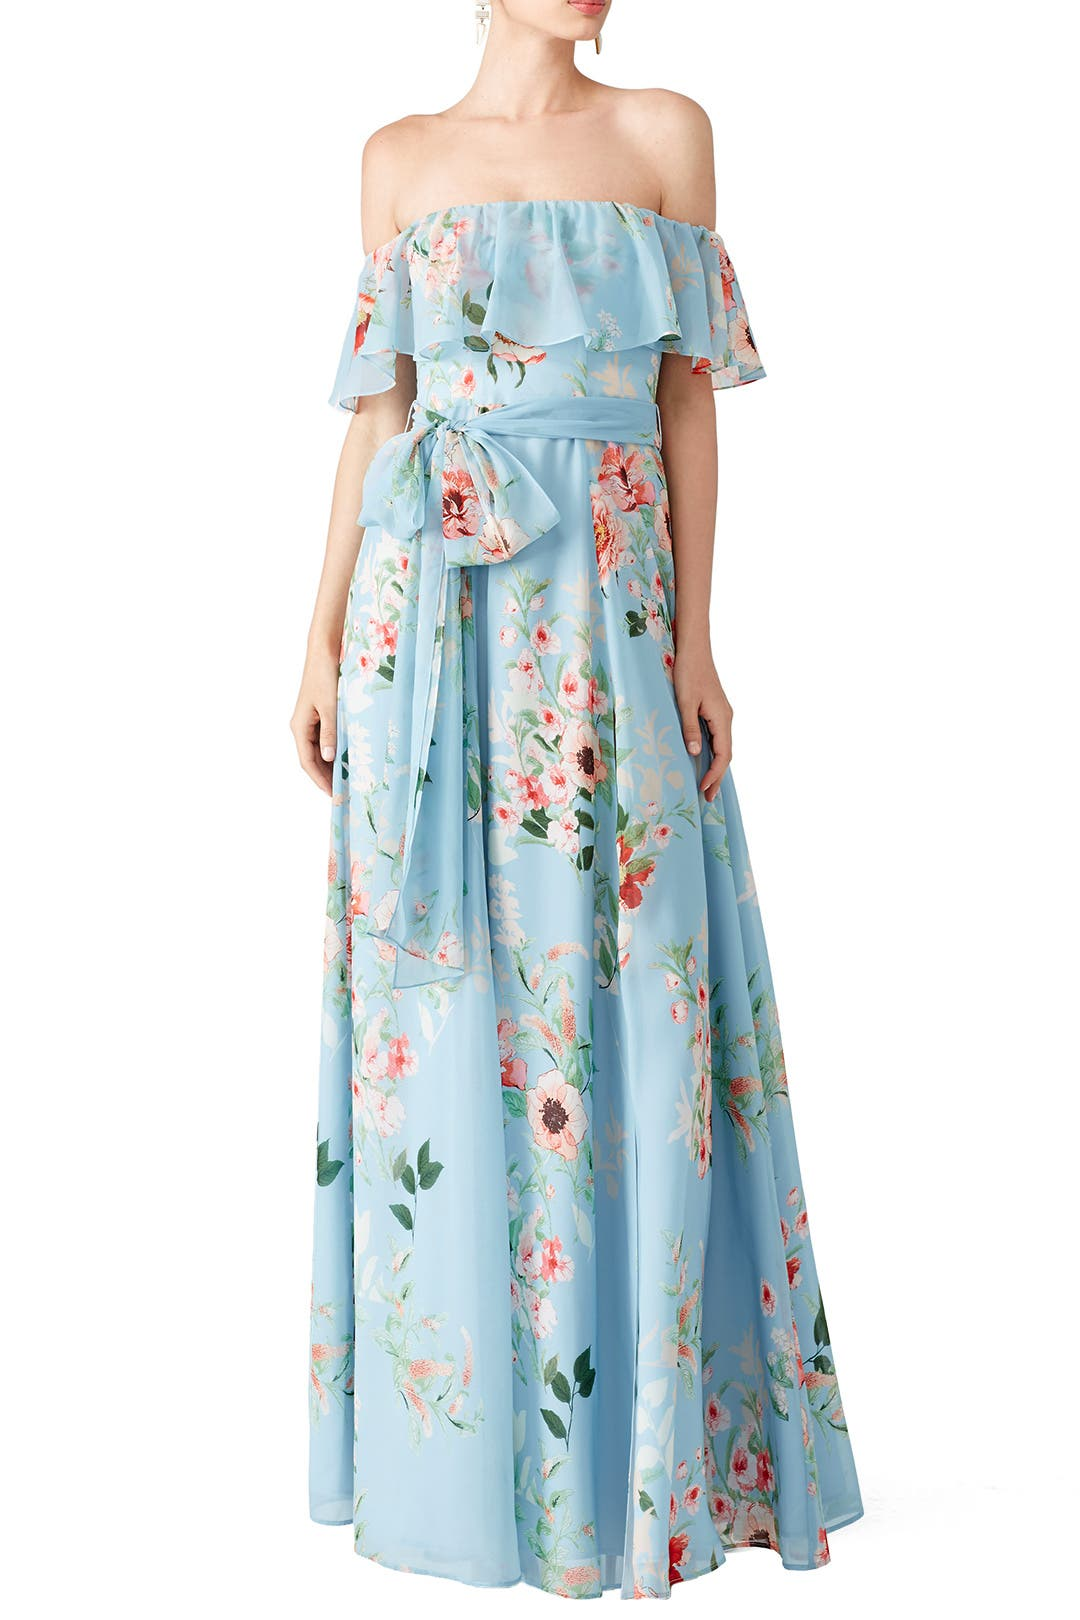 Long Dress For Wedding Guest Philippines